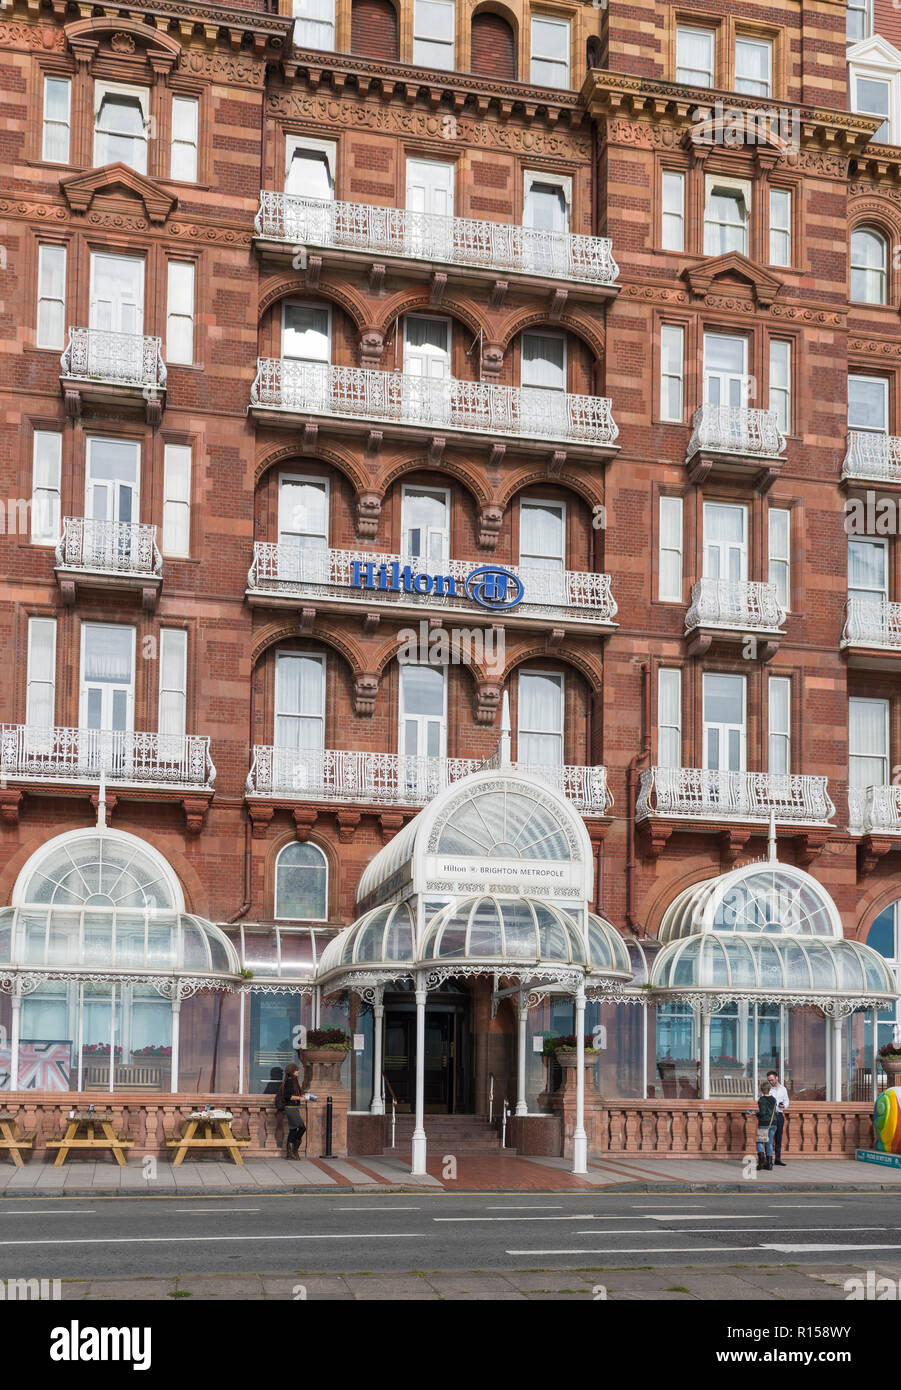 Brighton Metropole Hilton Hotel, a large seafront hotel in Brighton, East Sussex, England, UK. Portrait. - Stock Image